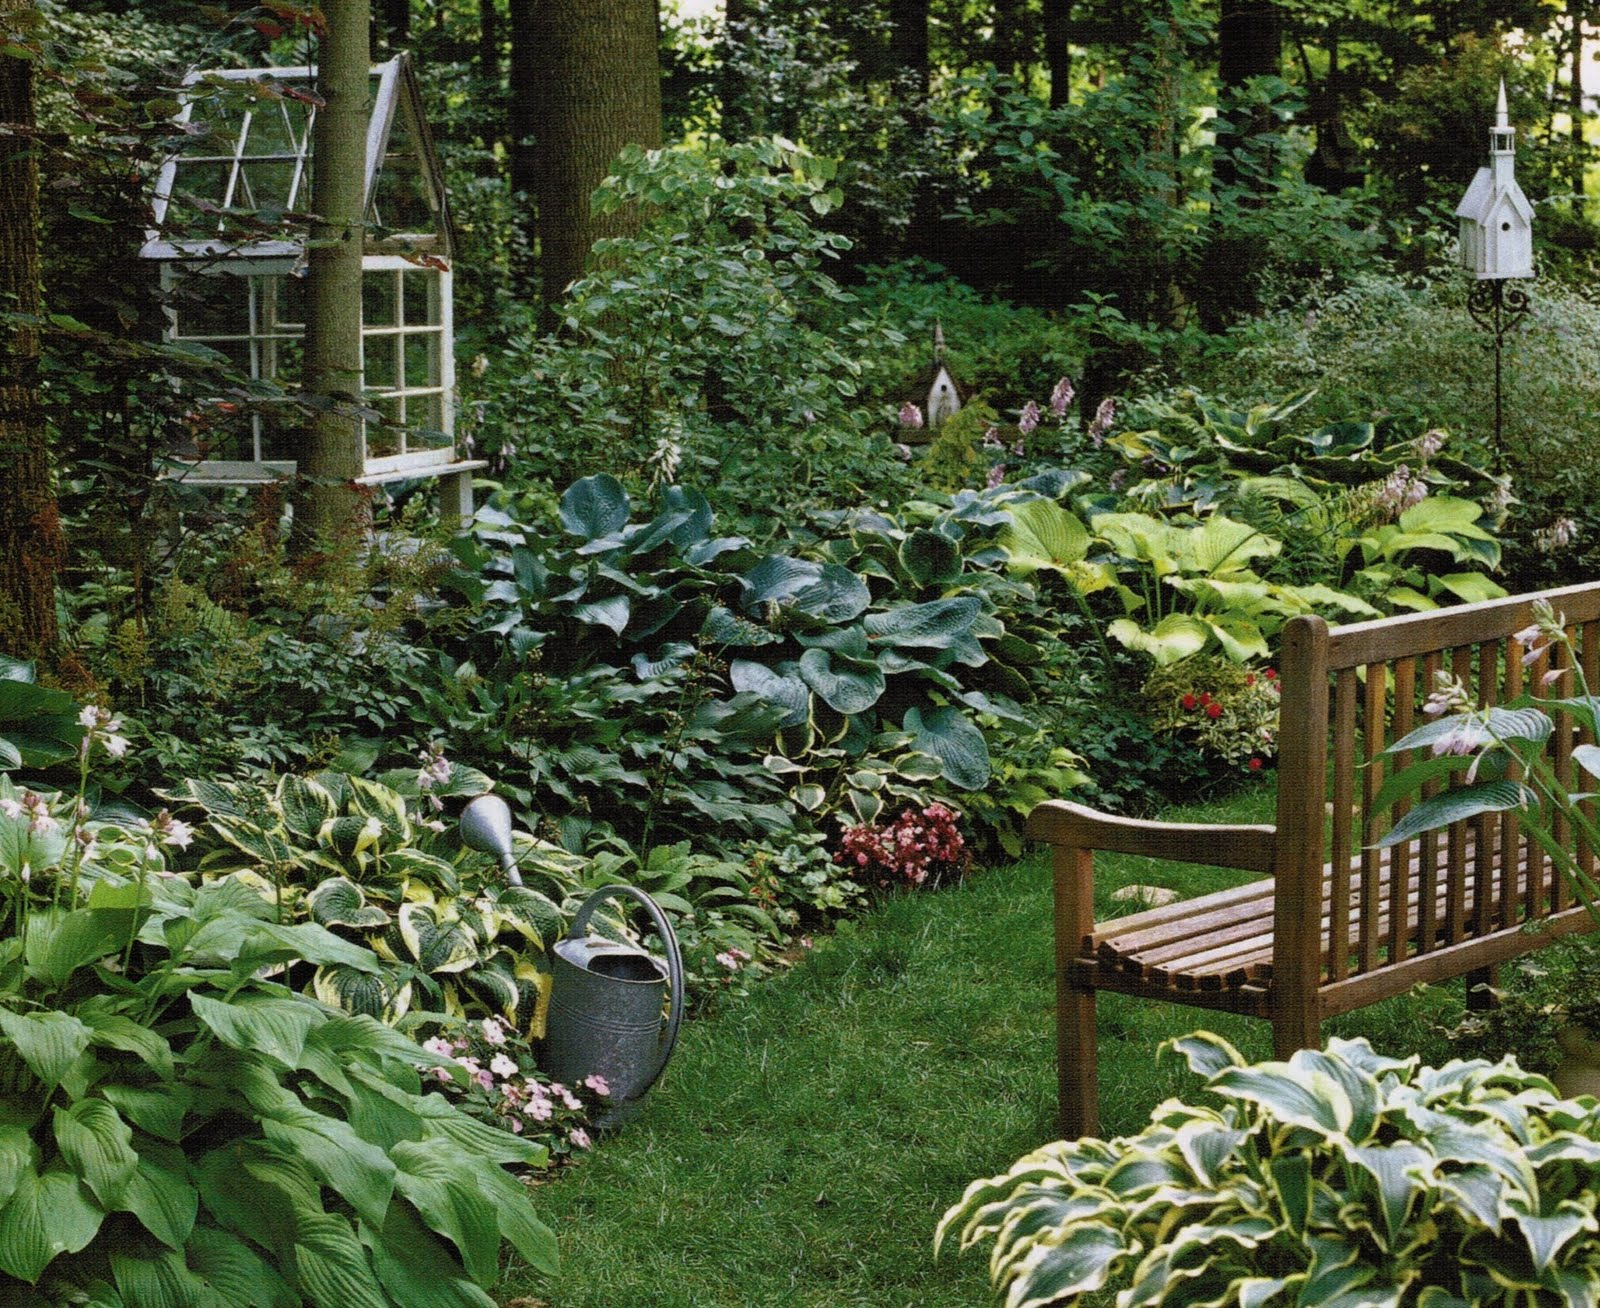 Maison Decor: A petite garden conservatory made out of old ...